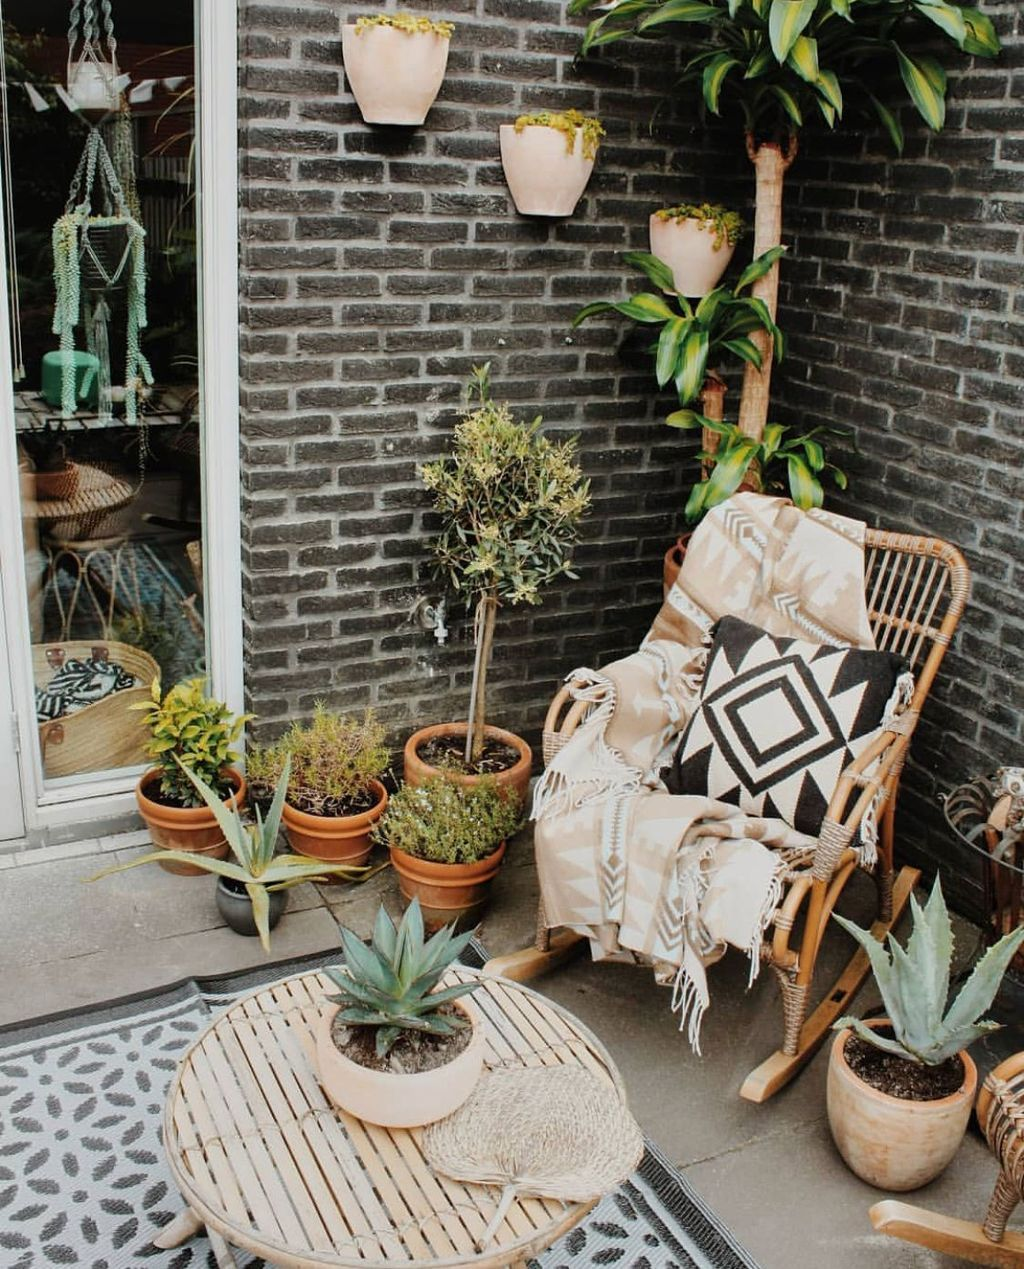 30 Beautiful Bohemian Style Outdoor Patio Decor Ideas In 2020 Bohemian Patio Decor Boho Patio Bohemian Patio